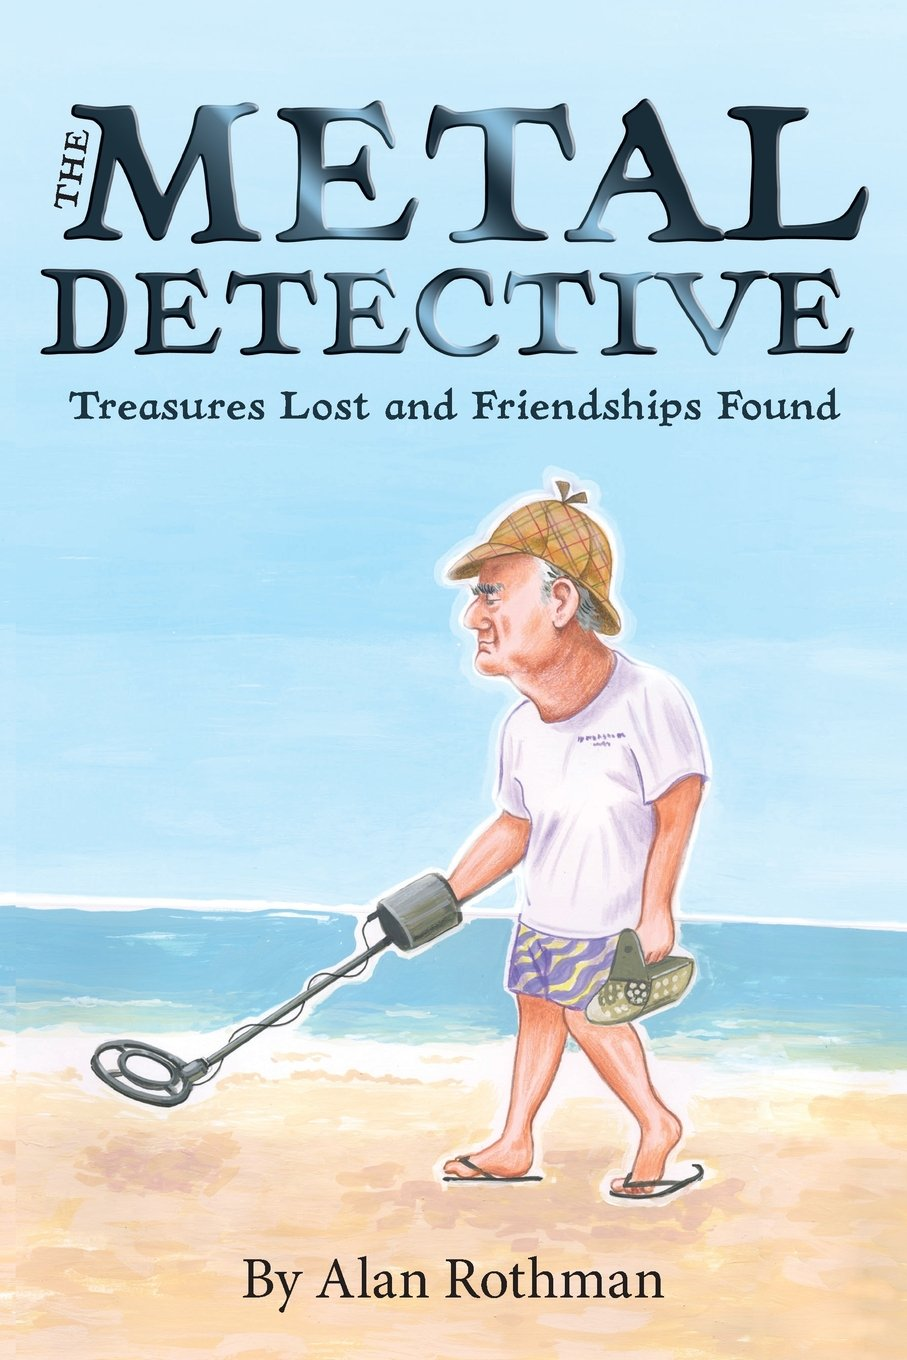 The Metal Detective: Treasures Lost and Friendships Found